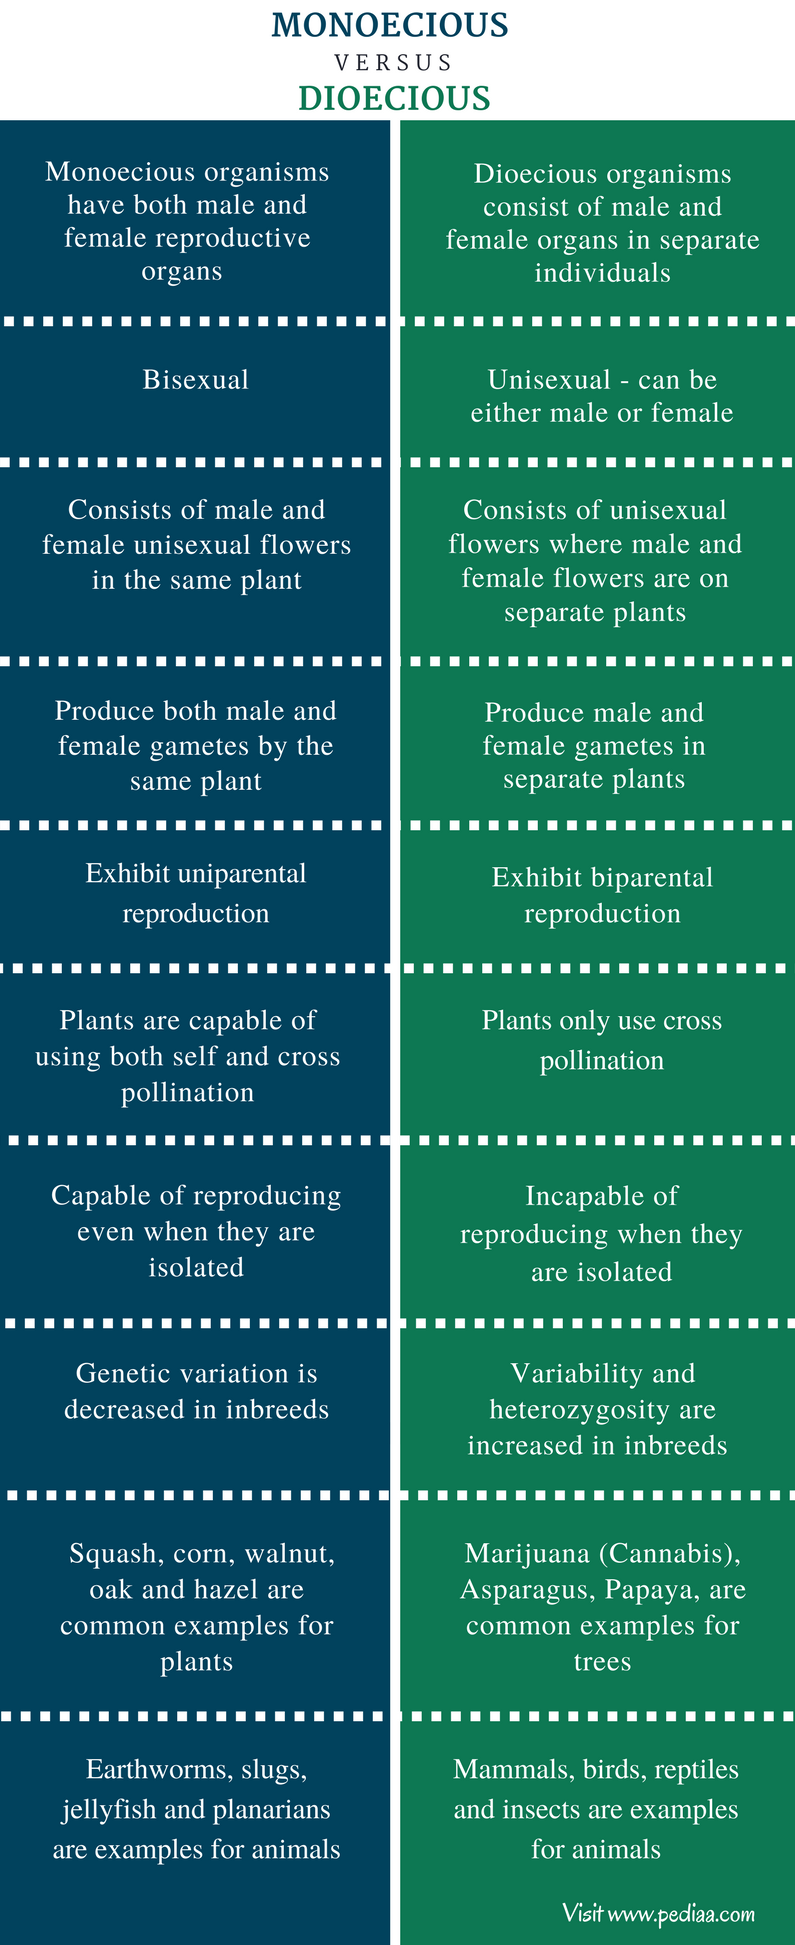 Difference Between Monoecious and Dioecious - Comparison Summary